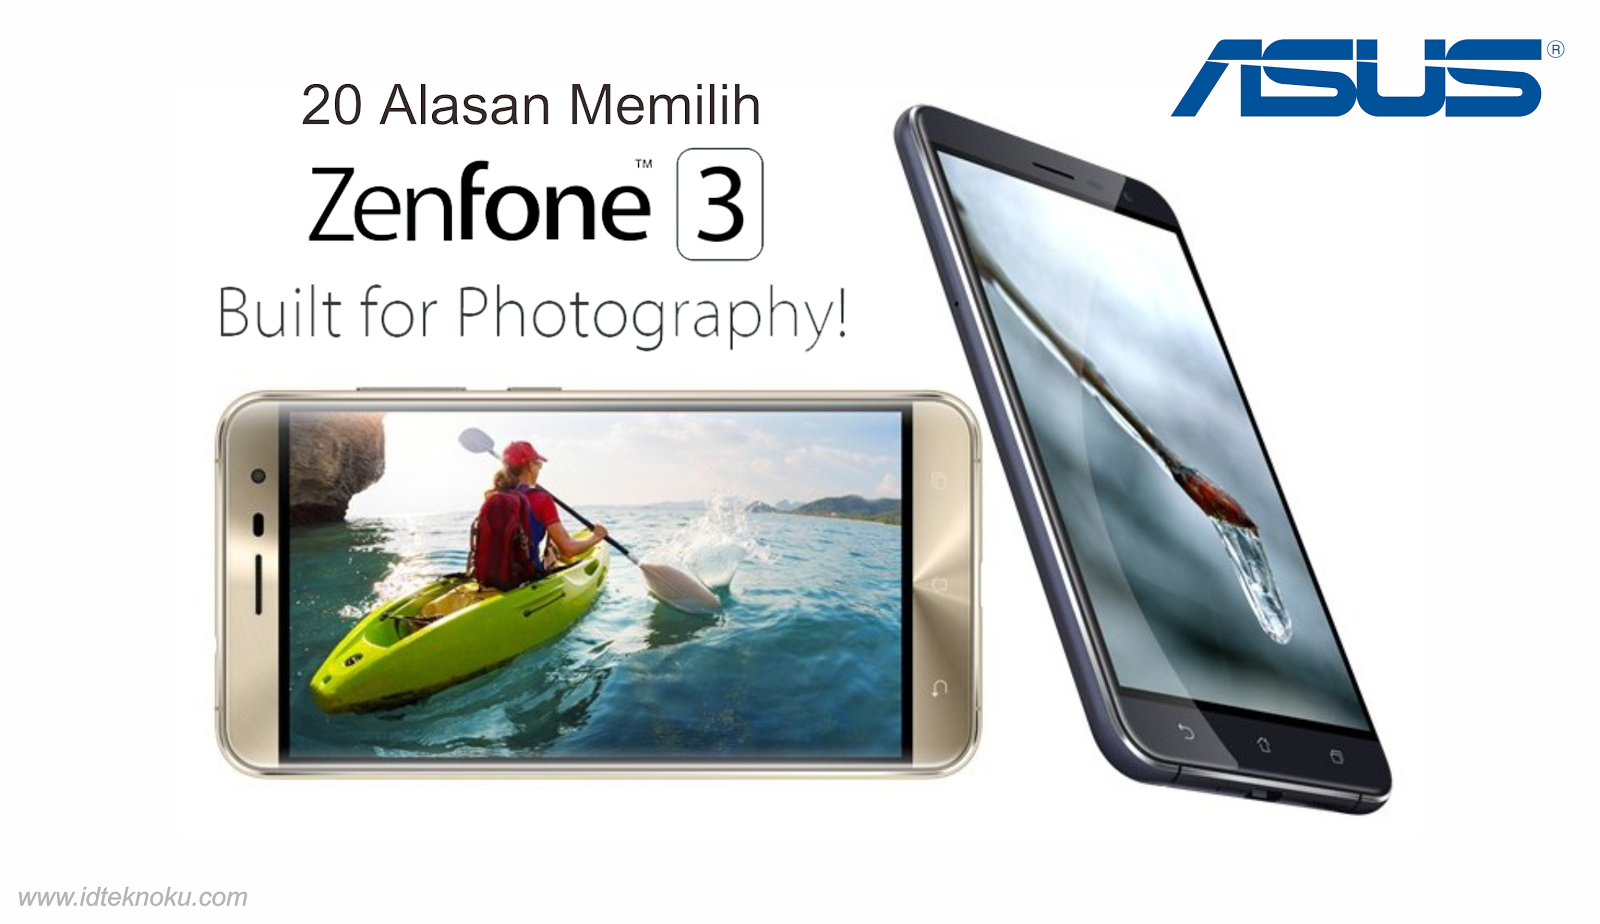 20 Alasan Memilih ASUS ZenFone 3, Smartphone Built For Photography